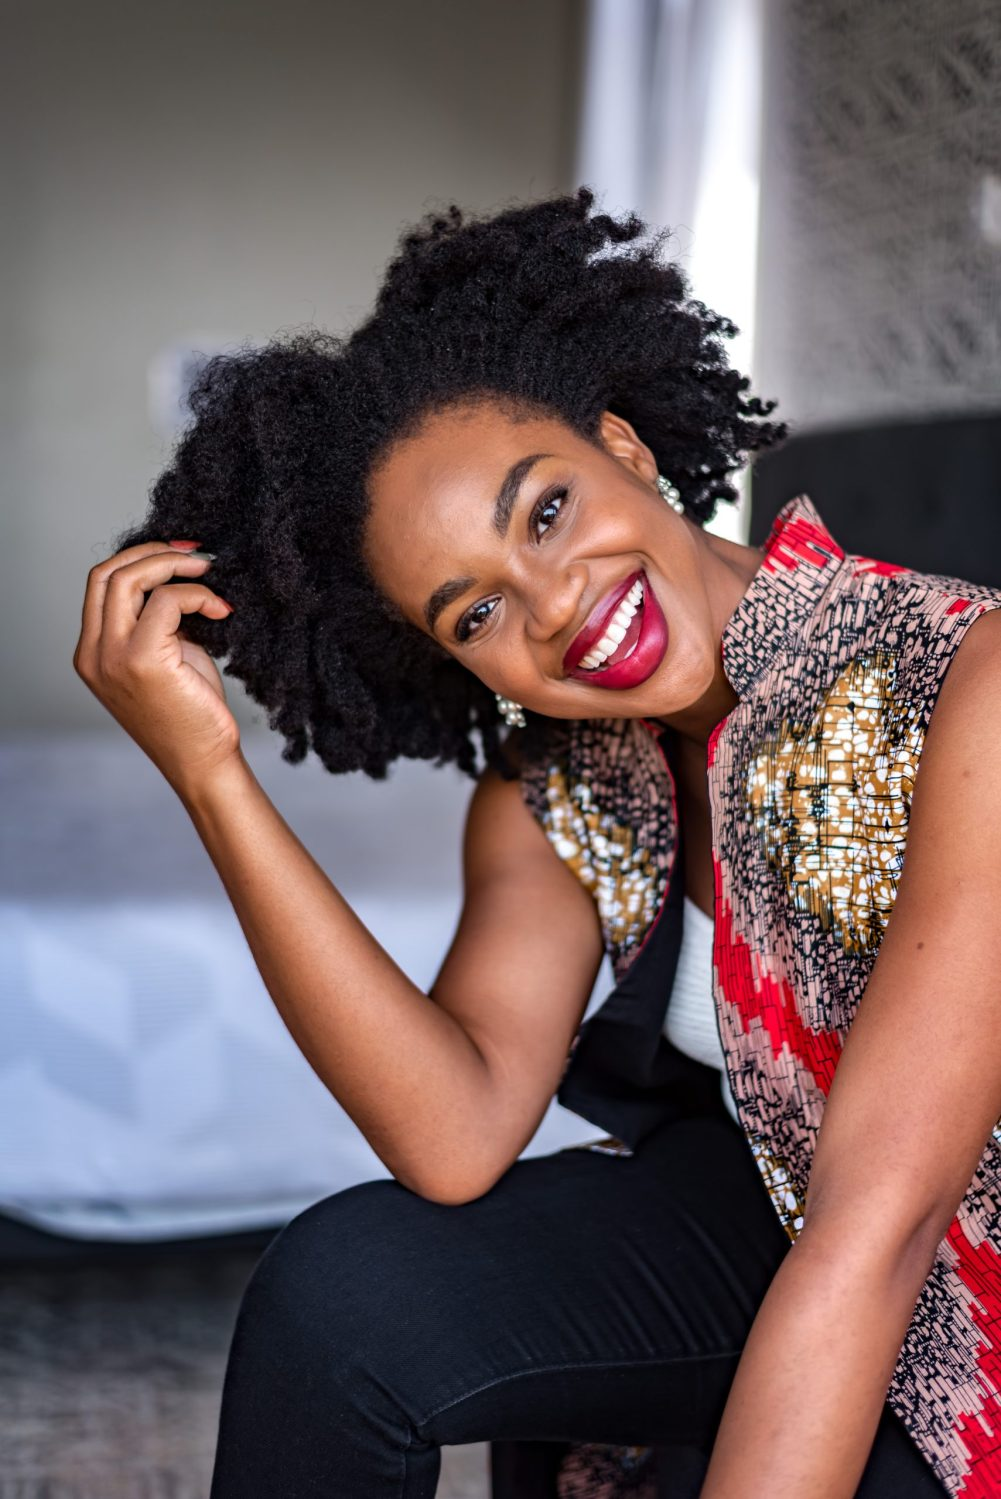 Ijeoma Kola smiling with red lipstick and touching her afro